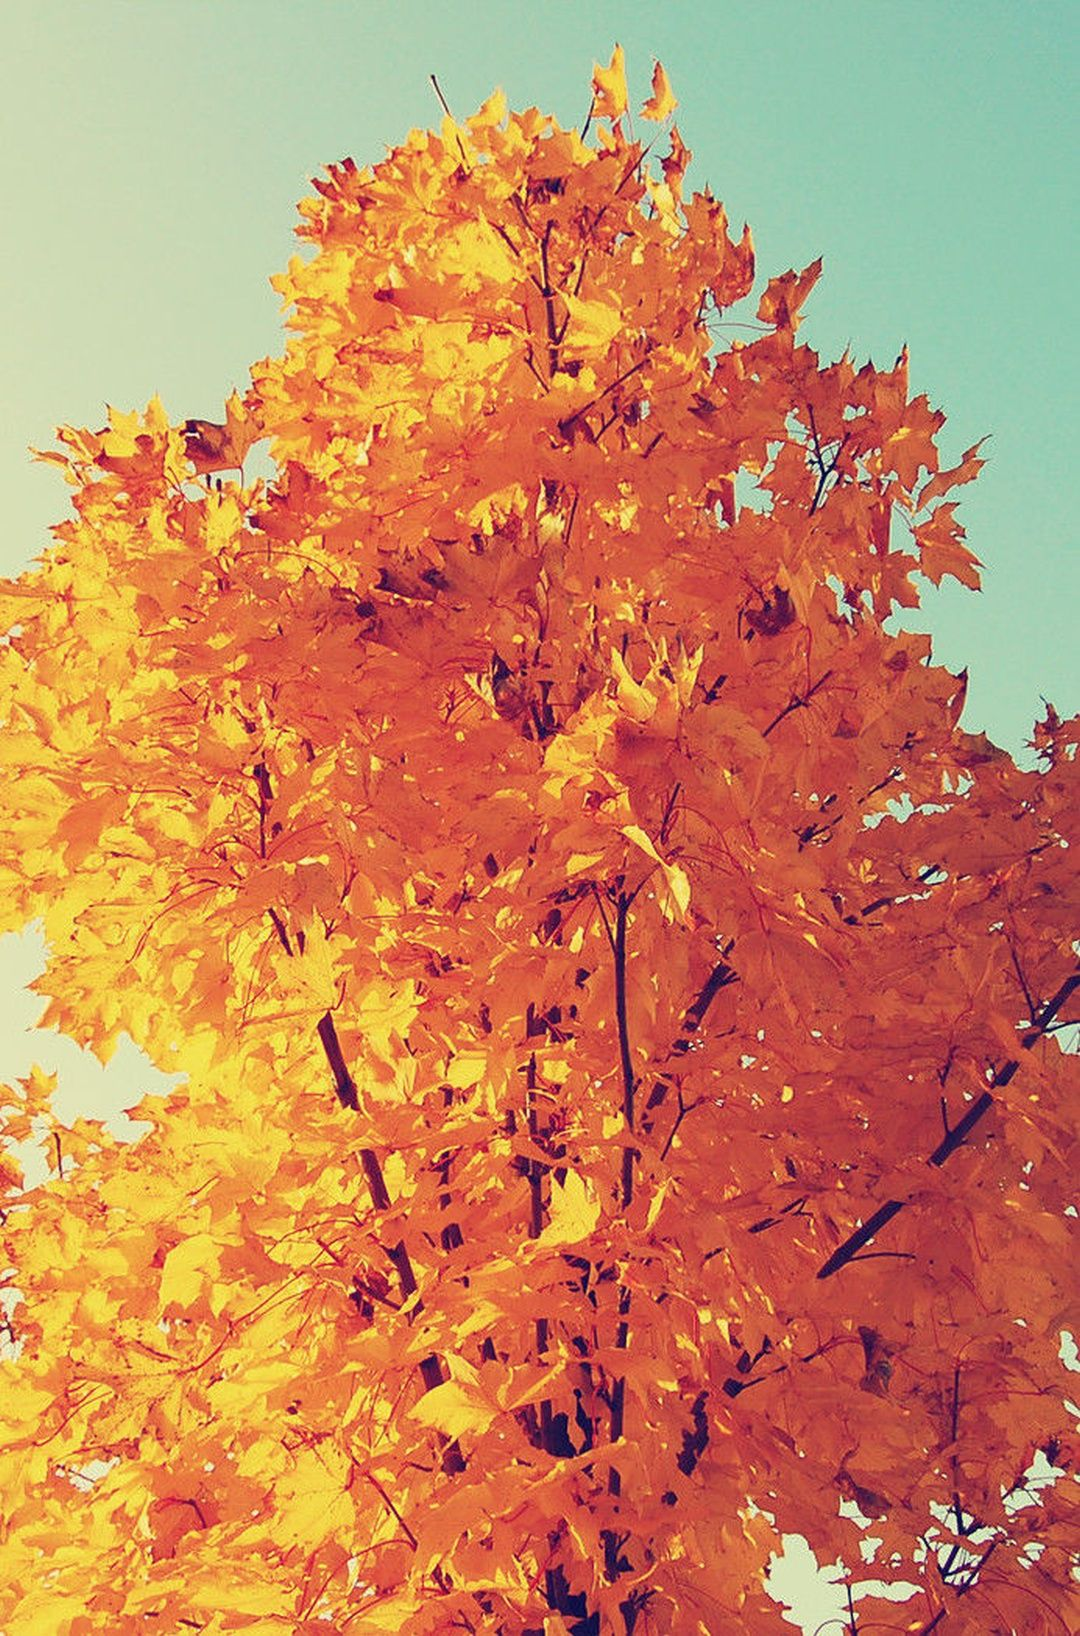 Colorful Autumn Tree Leaves Iphone 6 Plus Hd Wallpaper Beautiful Wallpaper For Phone Tumblr Iphone Wallpaper Nature Iphone Wallpaper